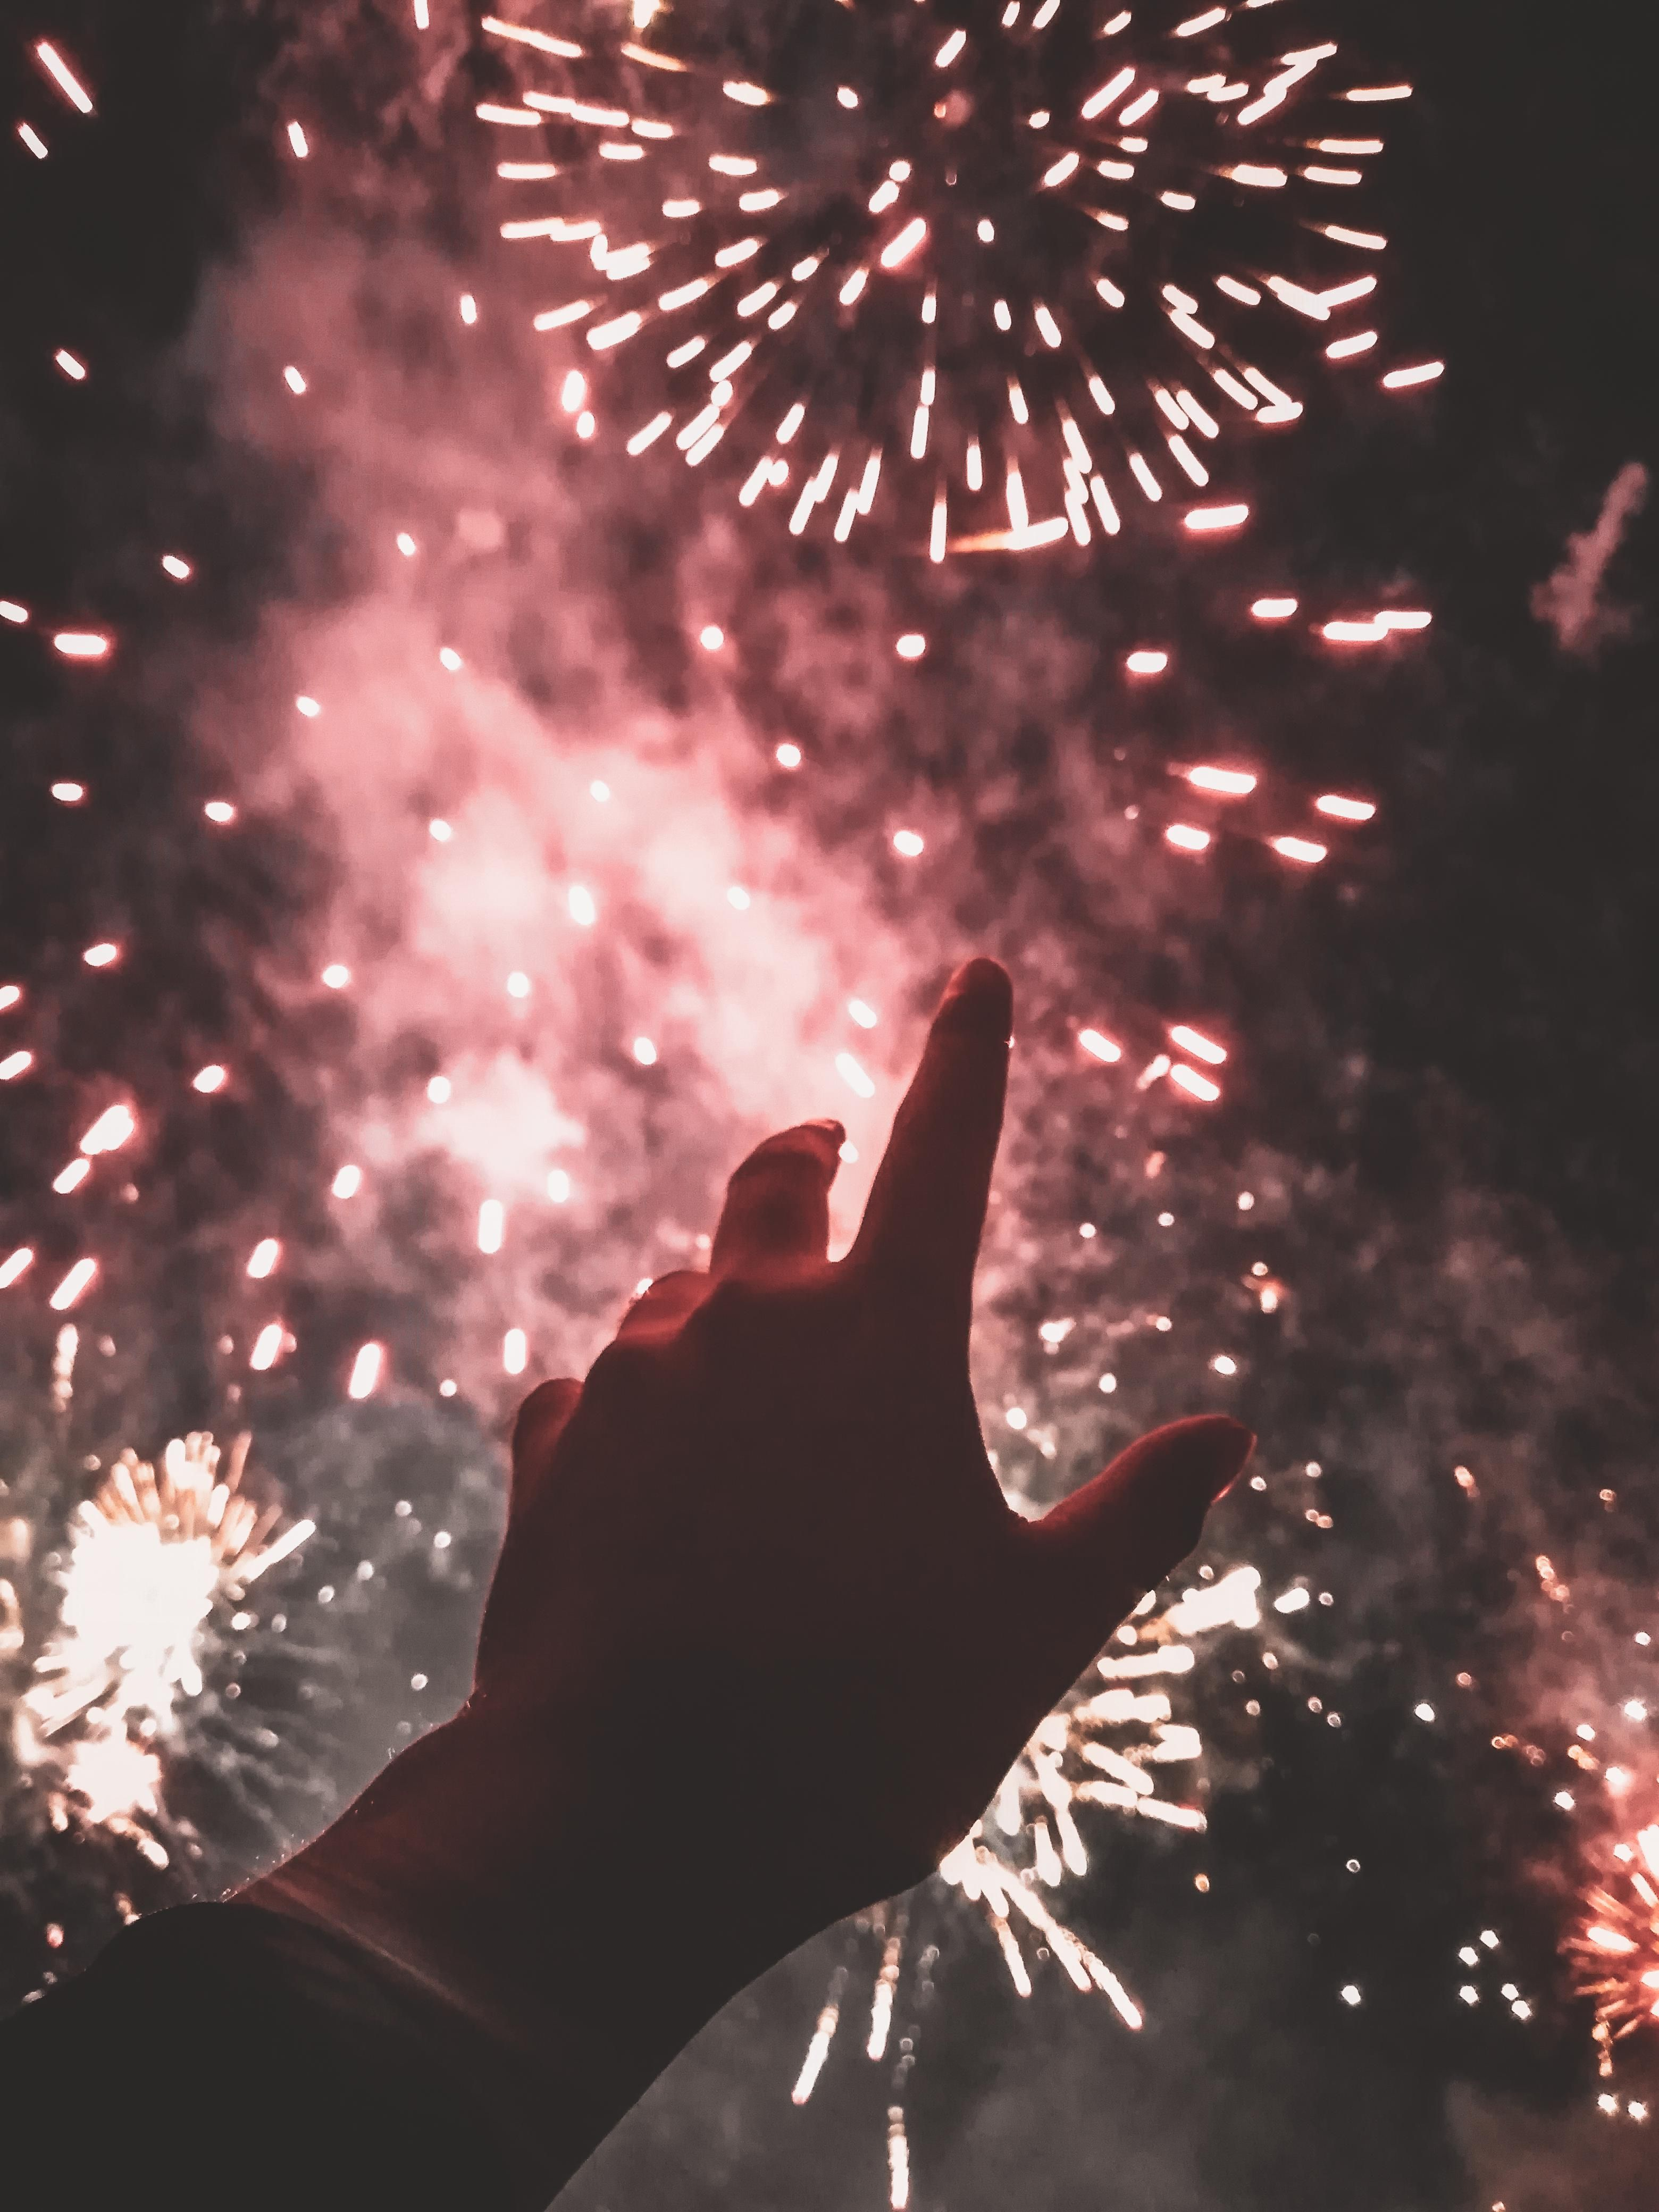 ITAP of my hand during a fireworks display. #PHOTO #CAPTURE #NATURE #INCREDIBLE